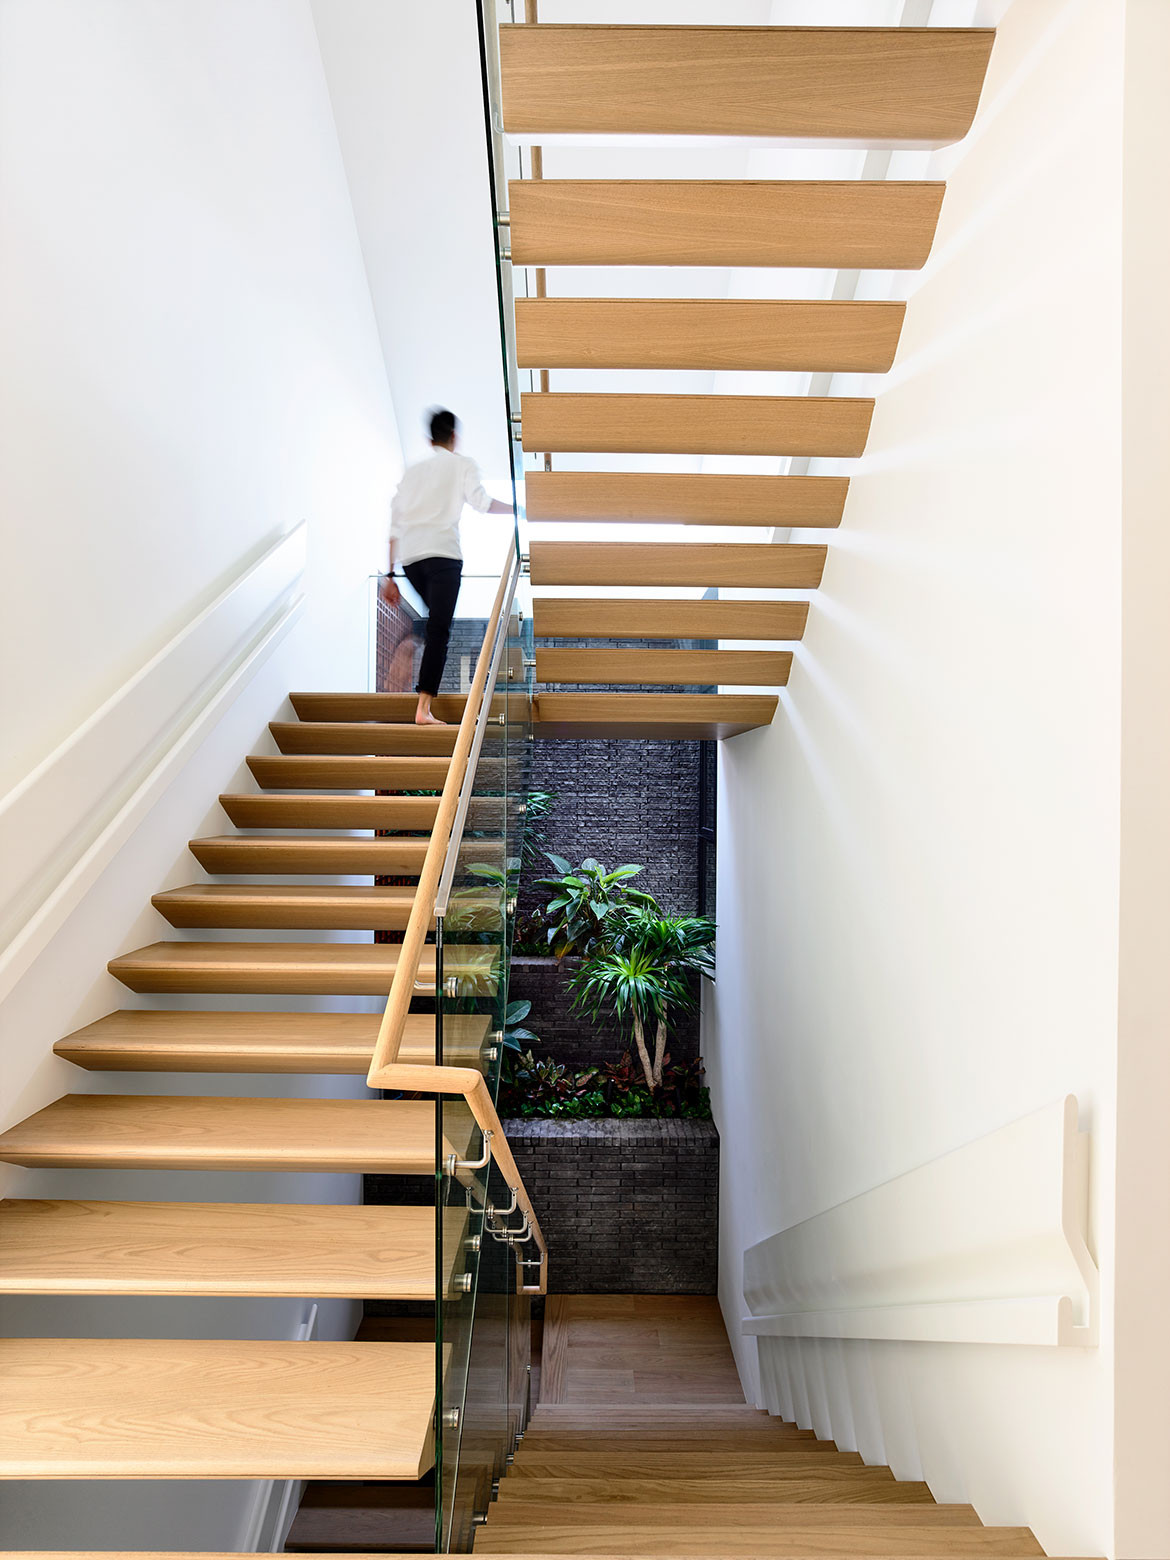 Siglap Plain HYLA Architects cc Derek Swalwell staircase